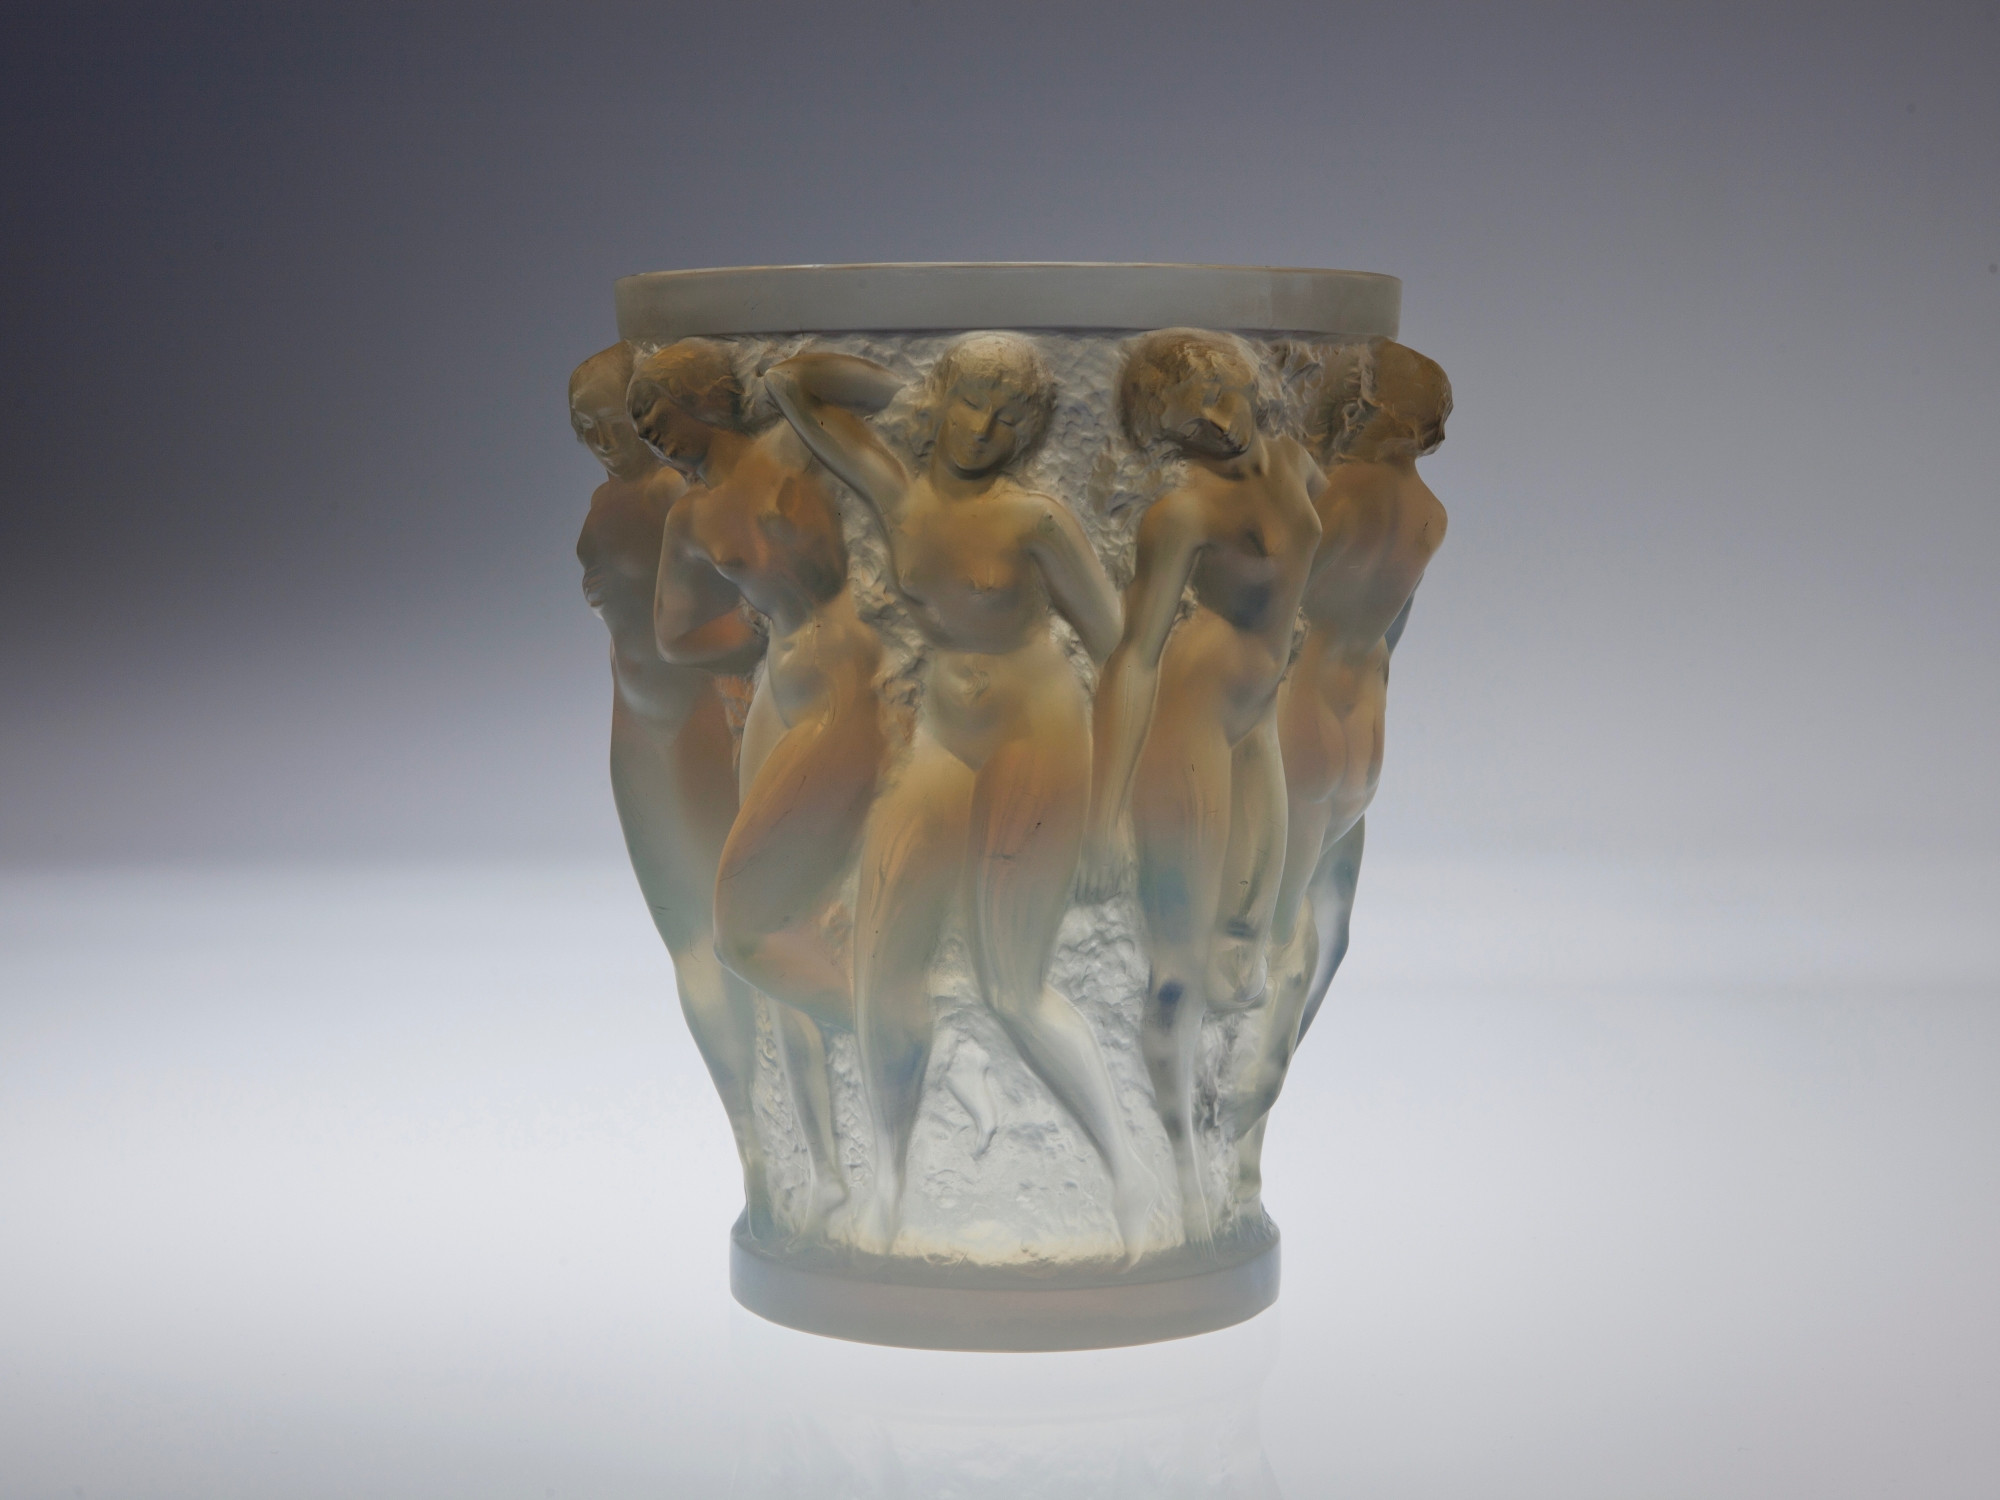 vase lalique les bacchantes of rena lalique bacchantes crystal glass vase with opalescent shine pertaining to tap to expand